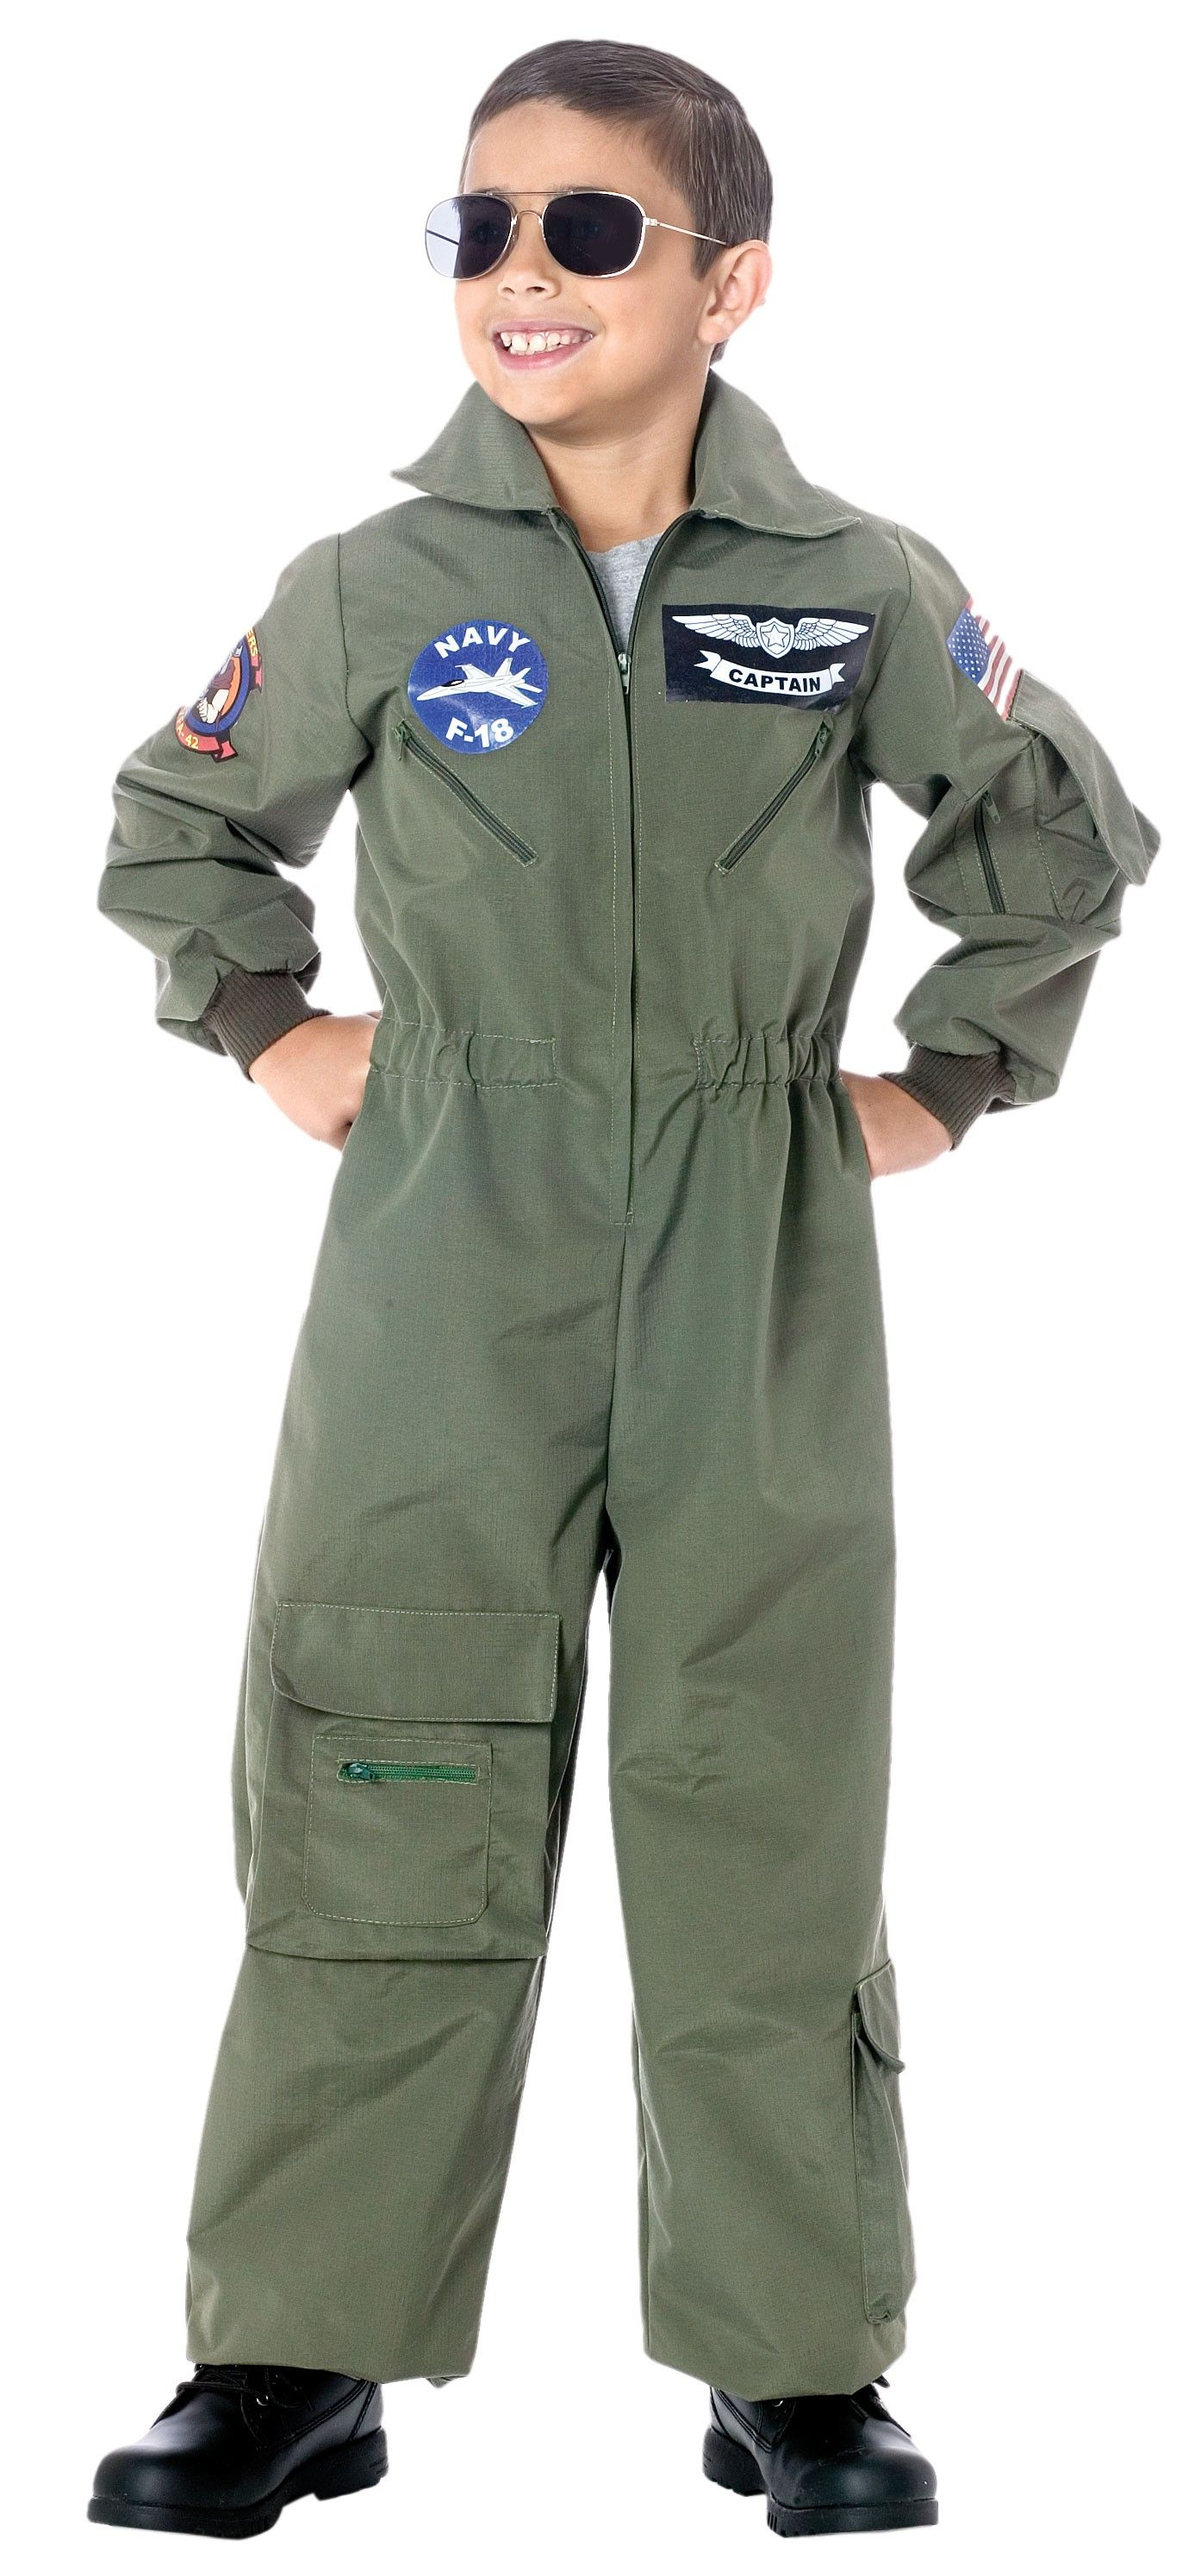 Air Force Pilot Boys Costume - This is an air force pilot costume ...